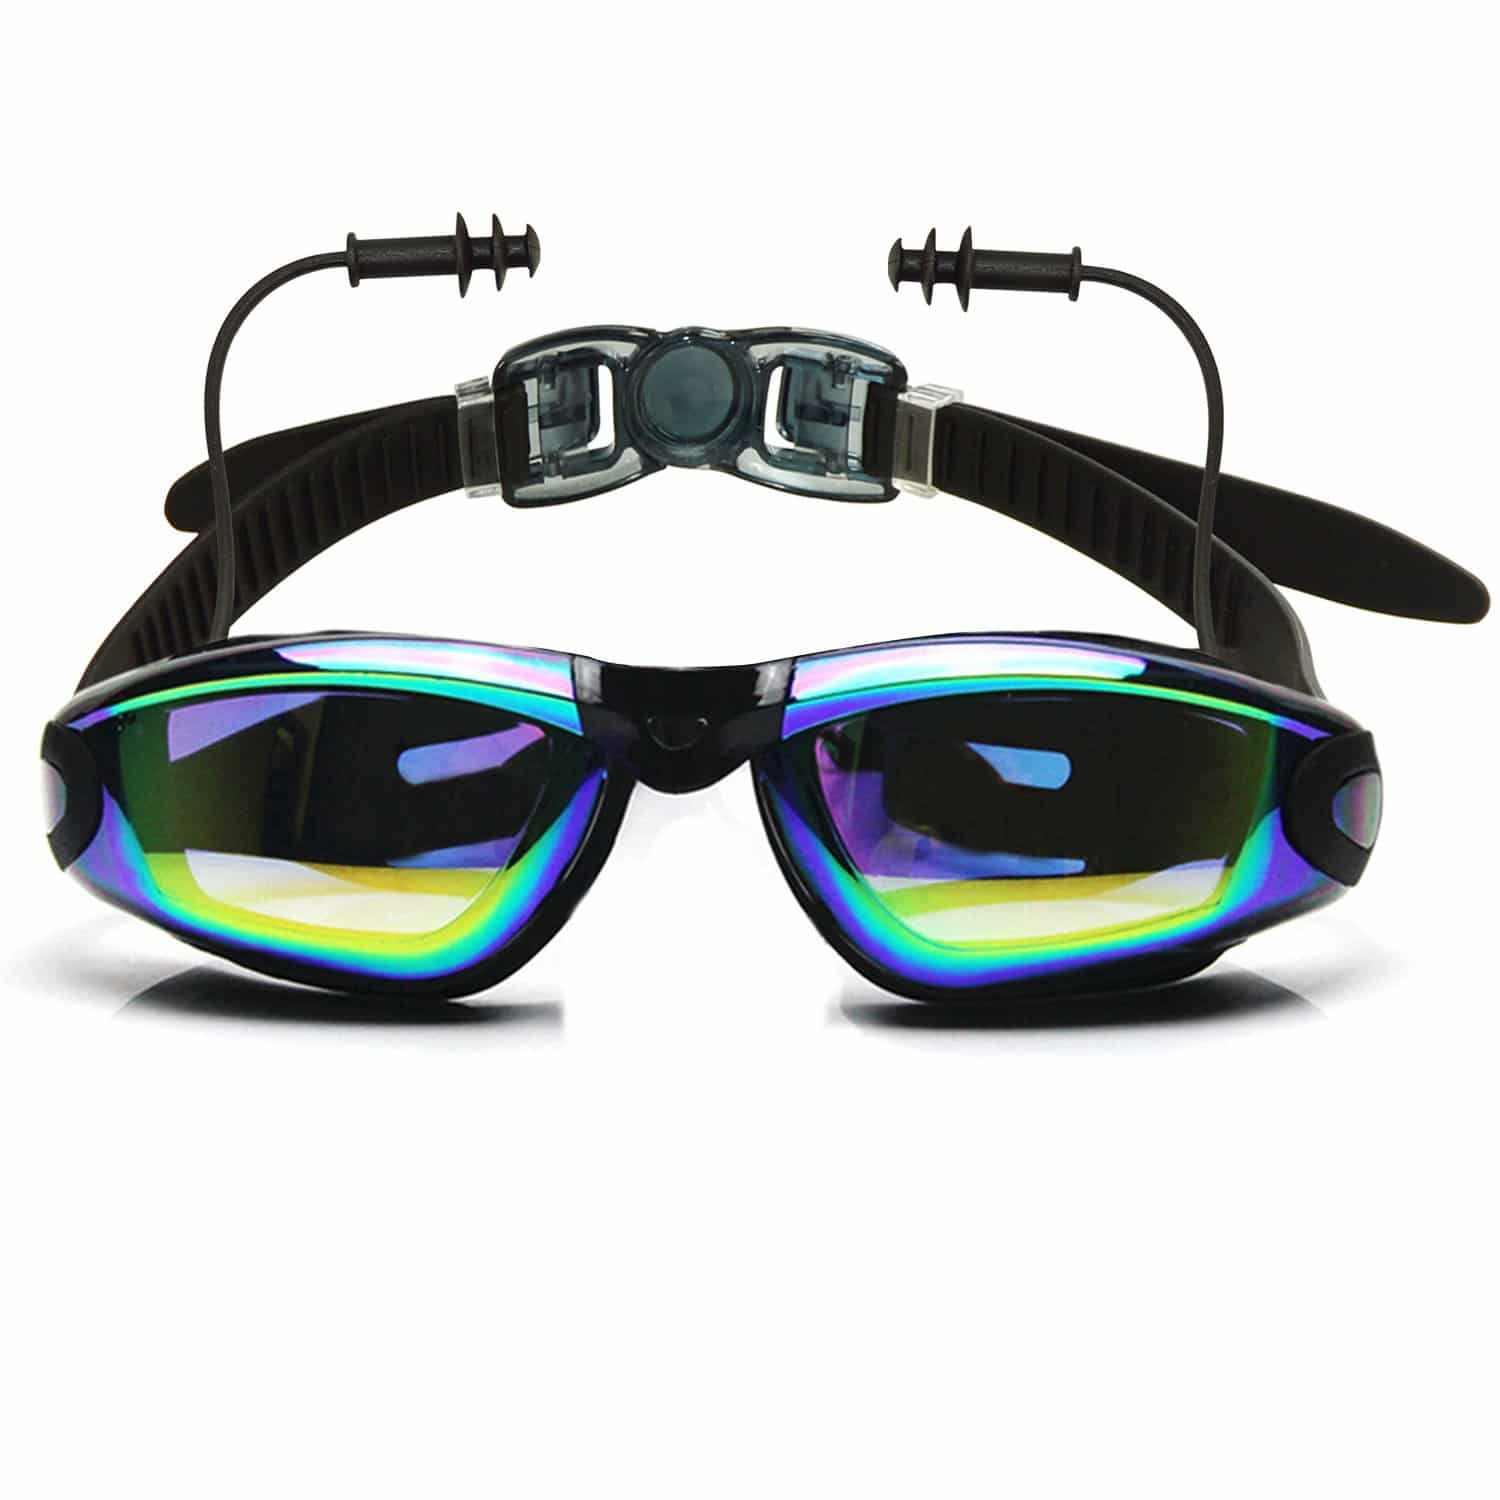 the best goggles  Anti Fog Swimming Goggles \u2013 Best Swim Caps Reviews